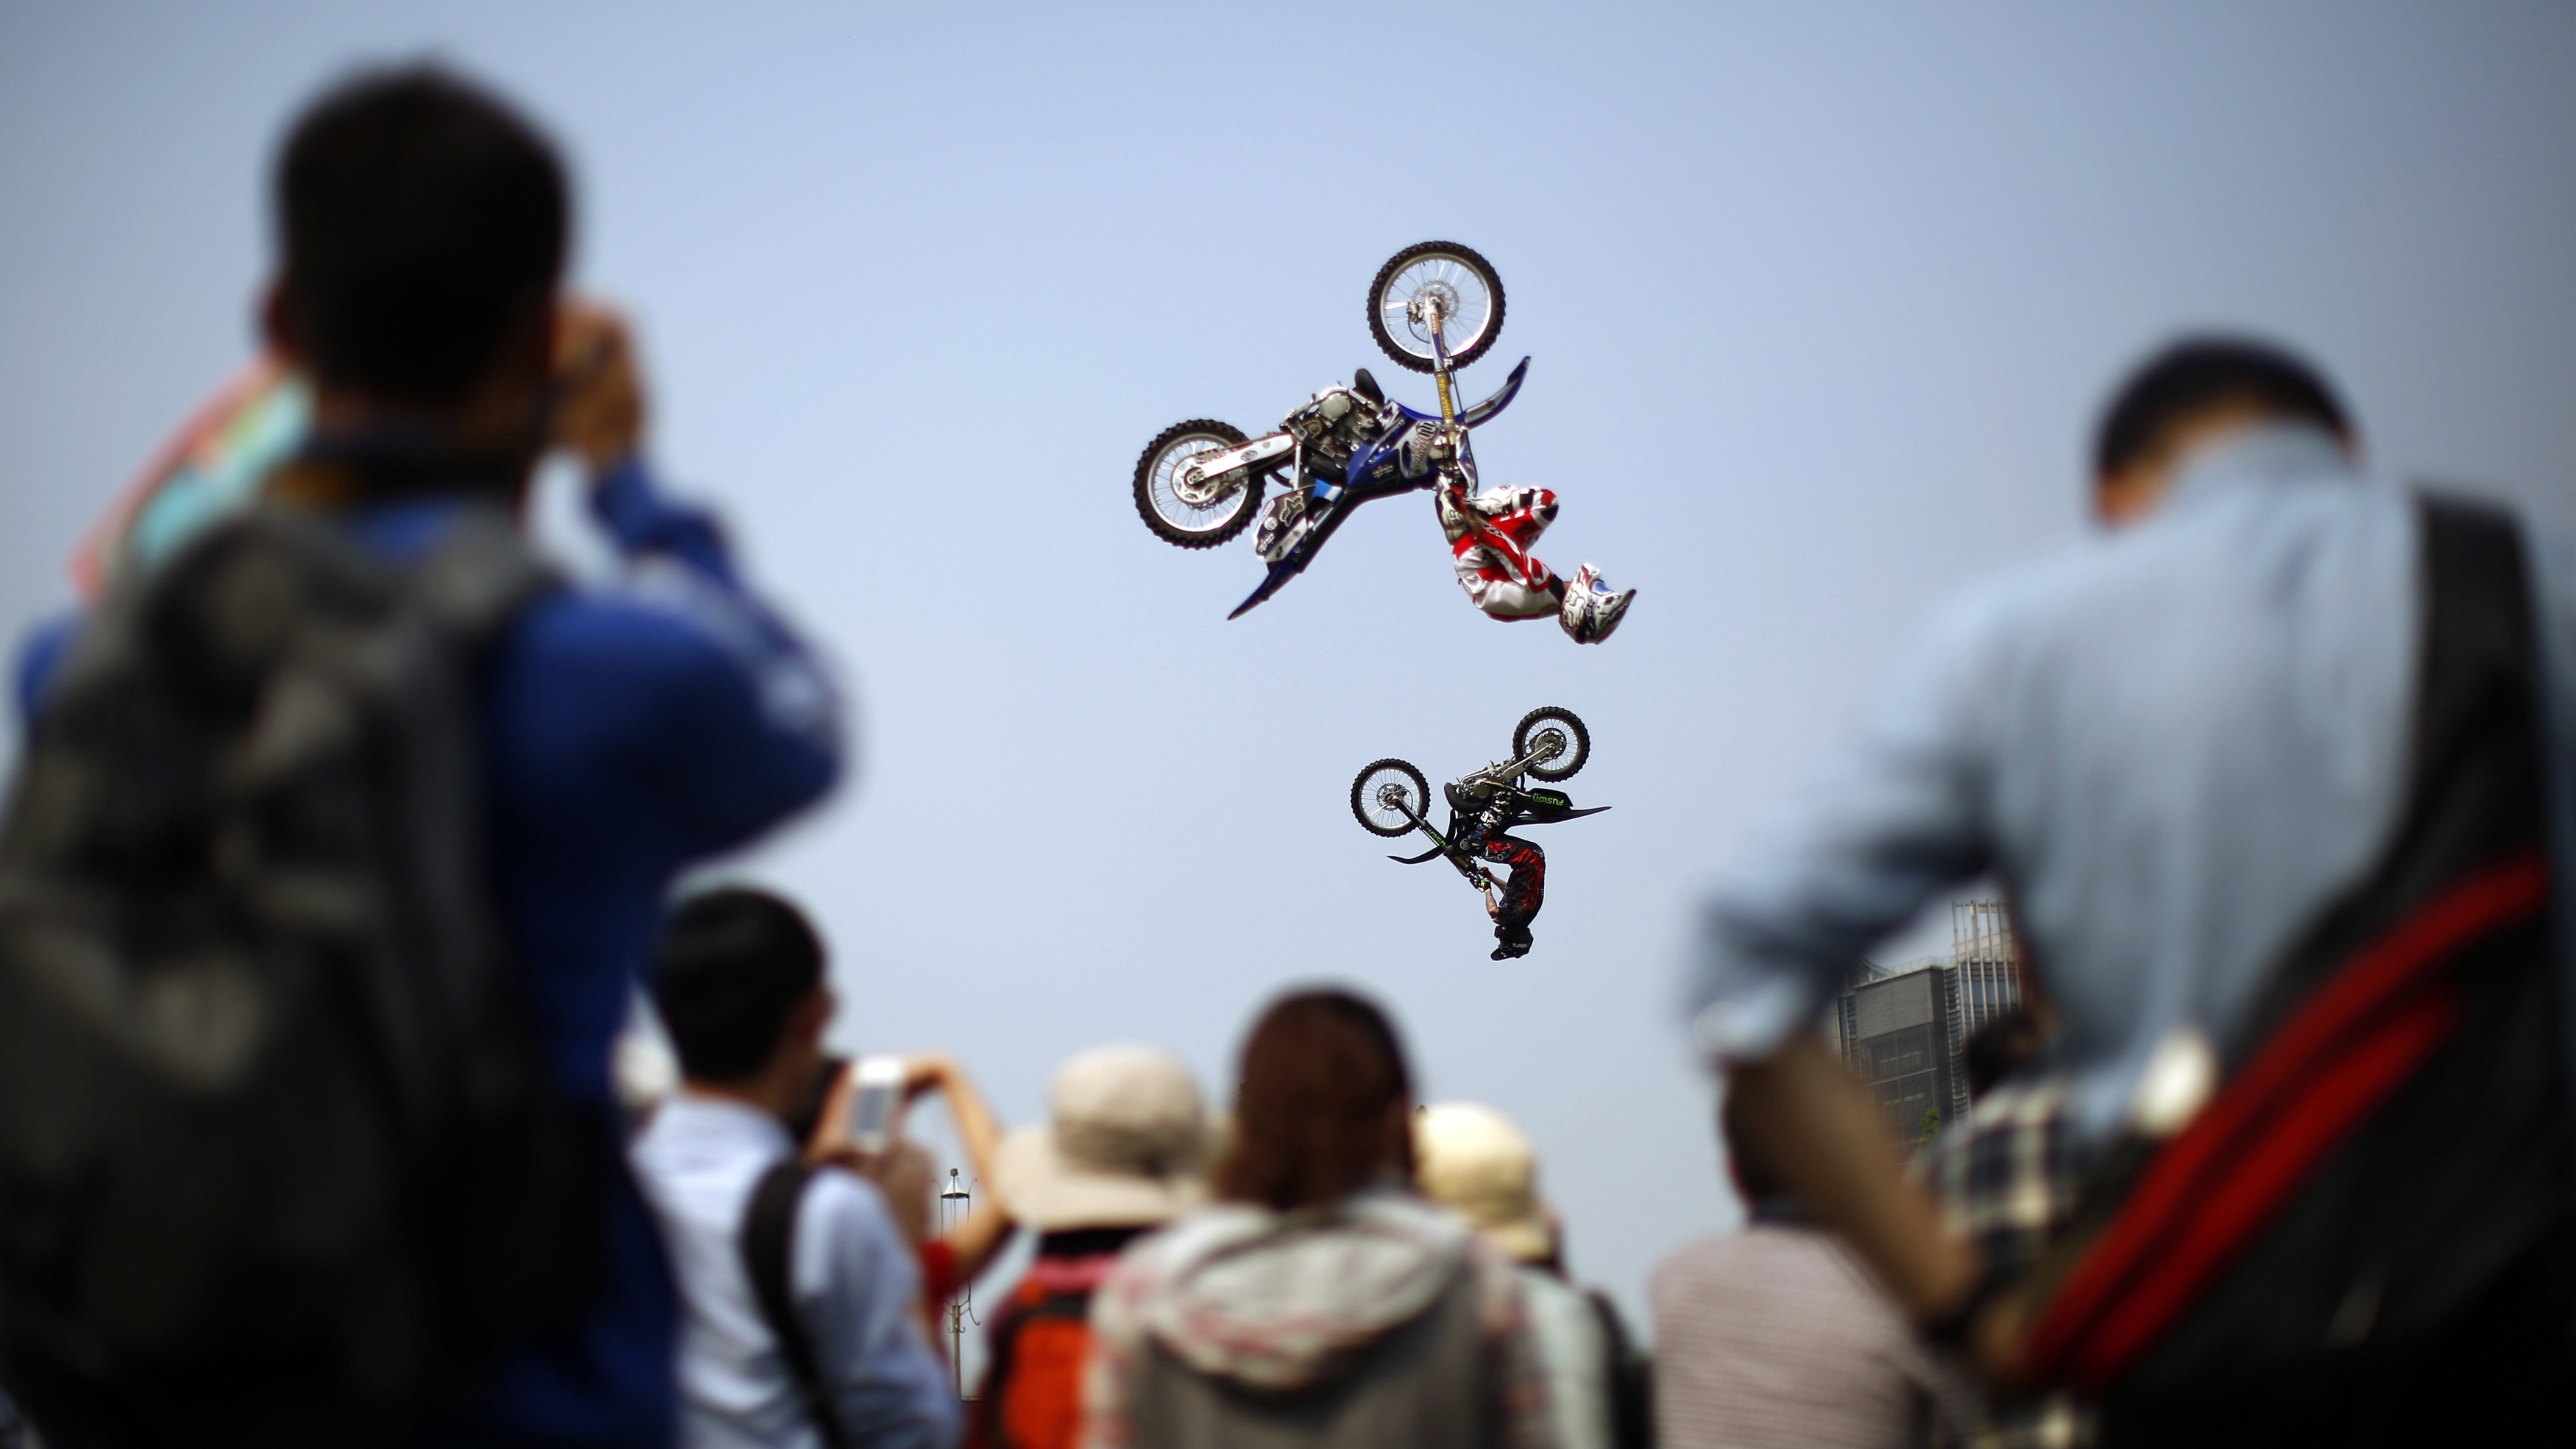 Competitors perform at the FMX Course competition during the World Extreme Games in Shanghai April 30, 2014. The games will be held in Shanghai until to May 3.